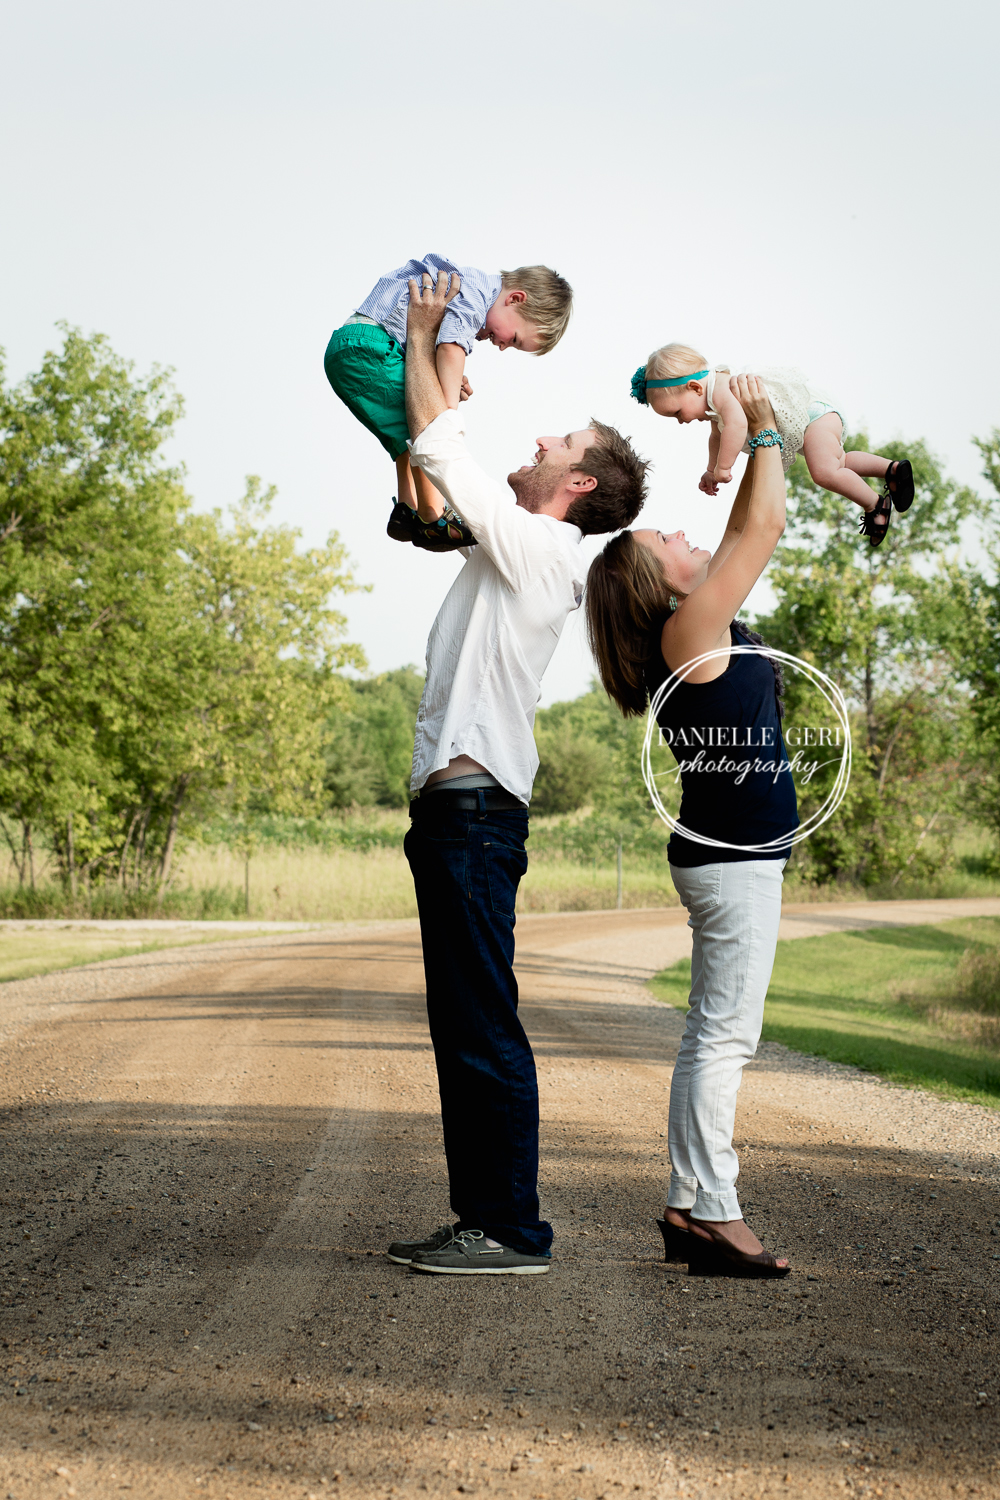 monticello, Minnesota family photographer outdoor